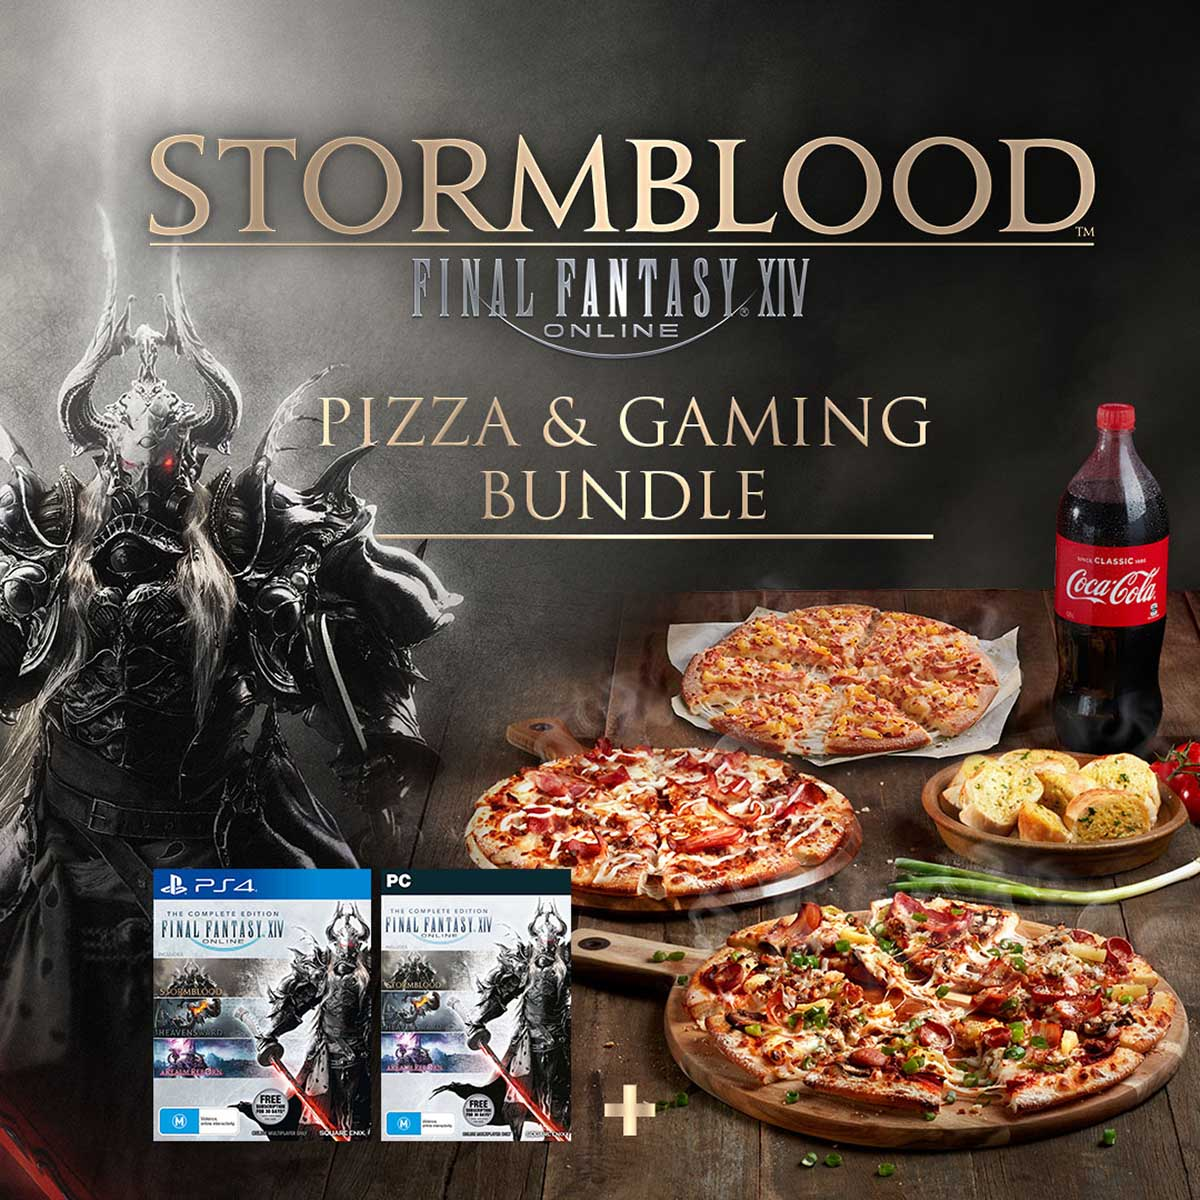 Final Fantasy-Themed Pizza is a Thing!